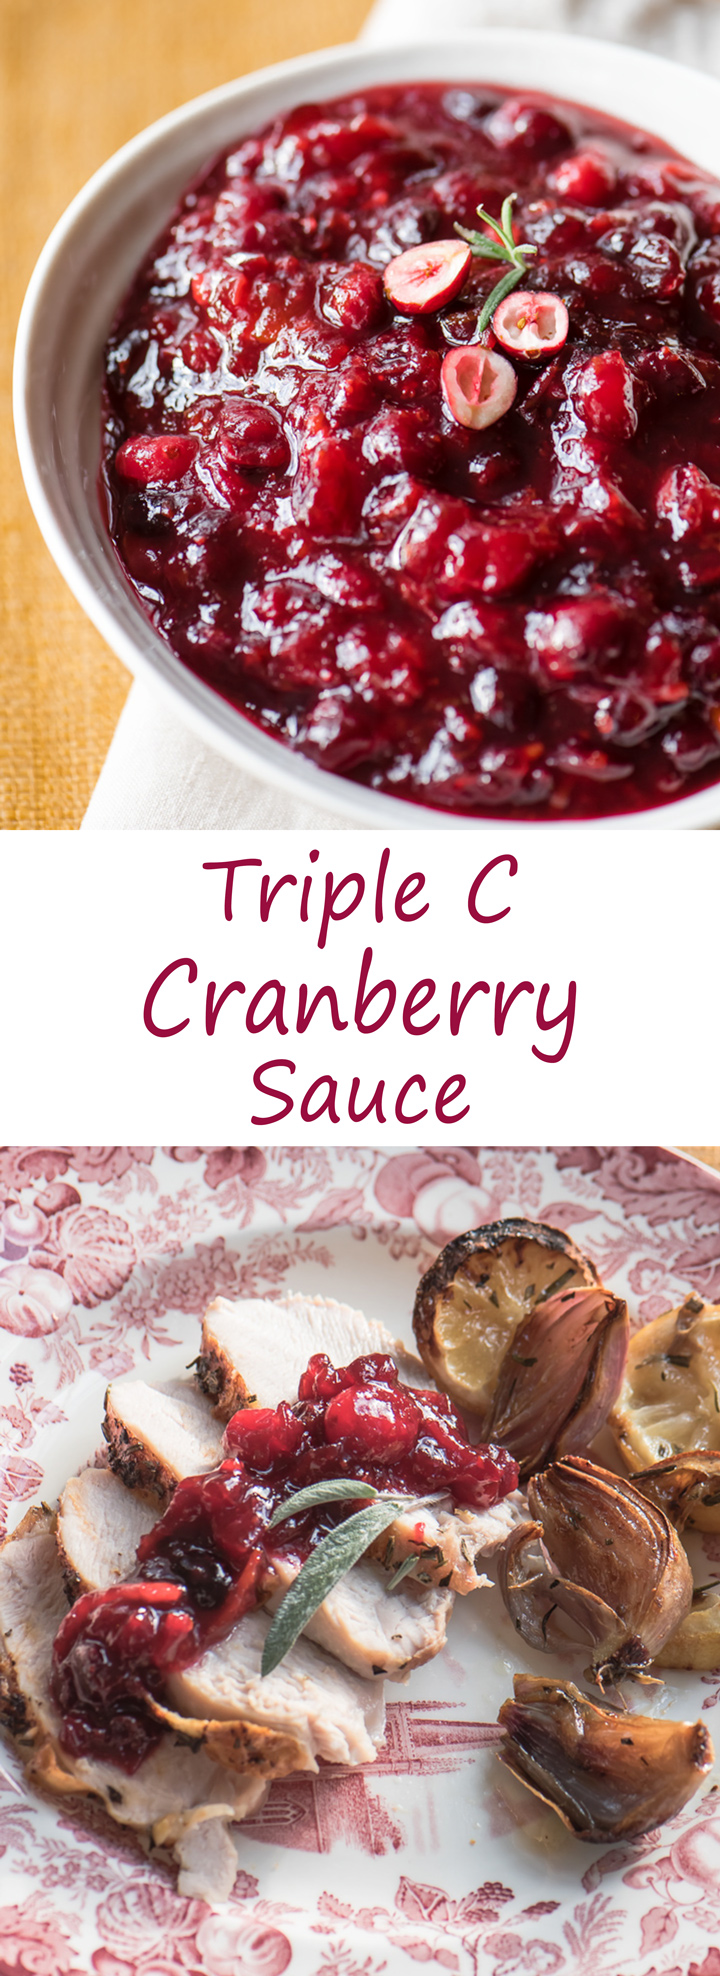 Triple C Cranberry Sauce Recipe has bright cranberry and orange flavor. Delicious and easy recipe.